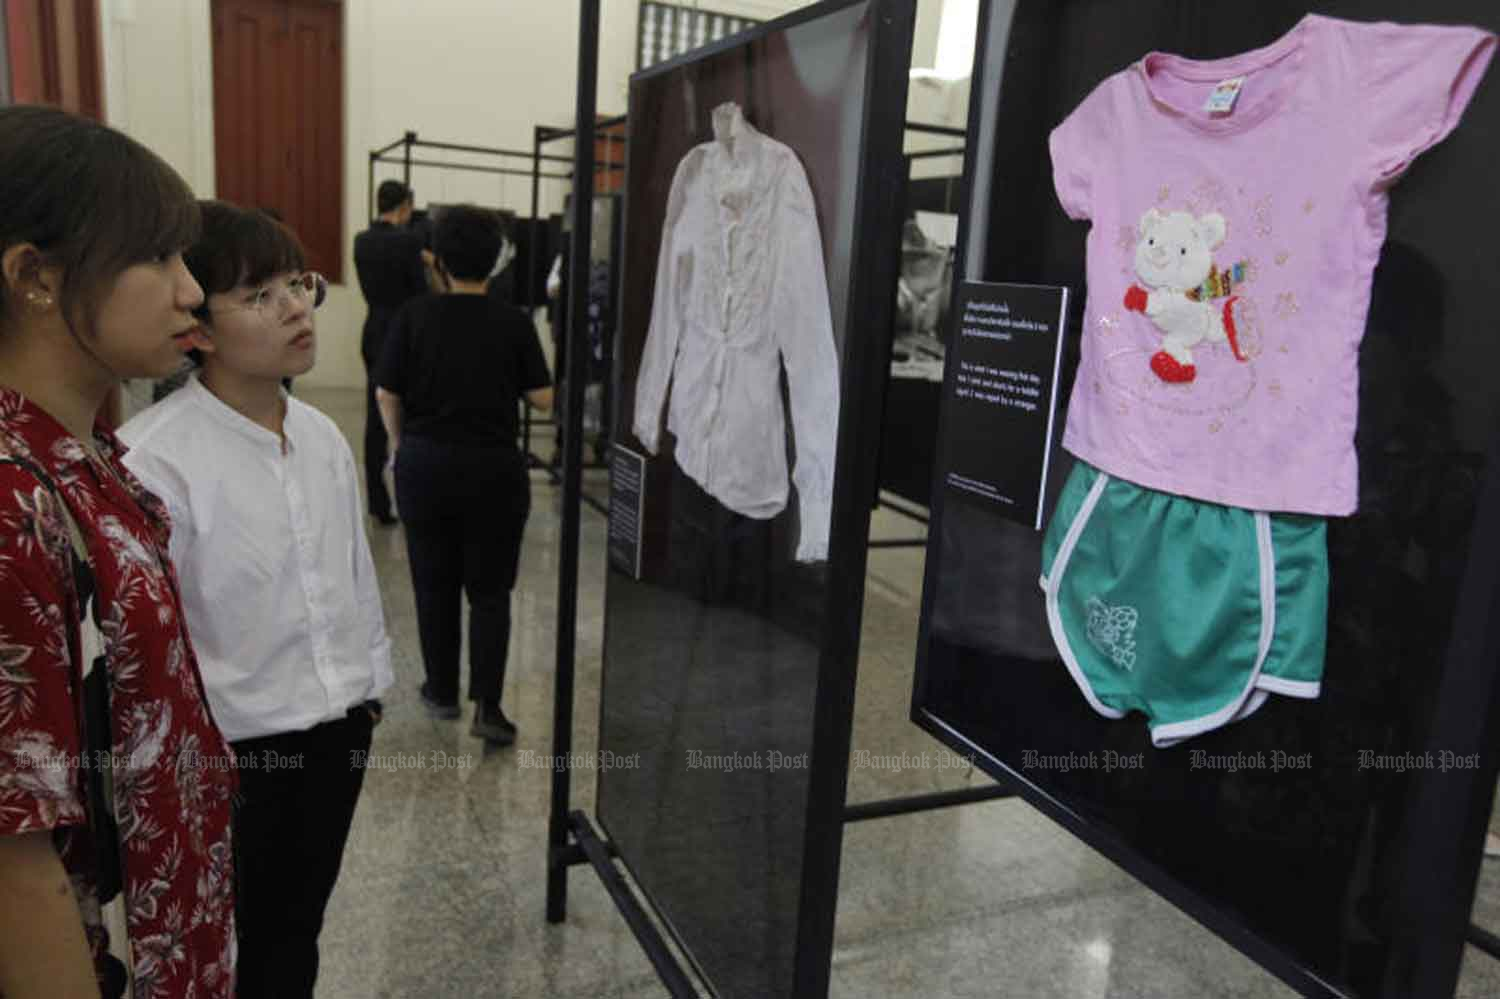 The clothes of some rape victims are displayed in an exhibition against sexual harassment in Bangkok last year. (Photo: Wichan Charoenkiatpakul)